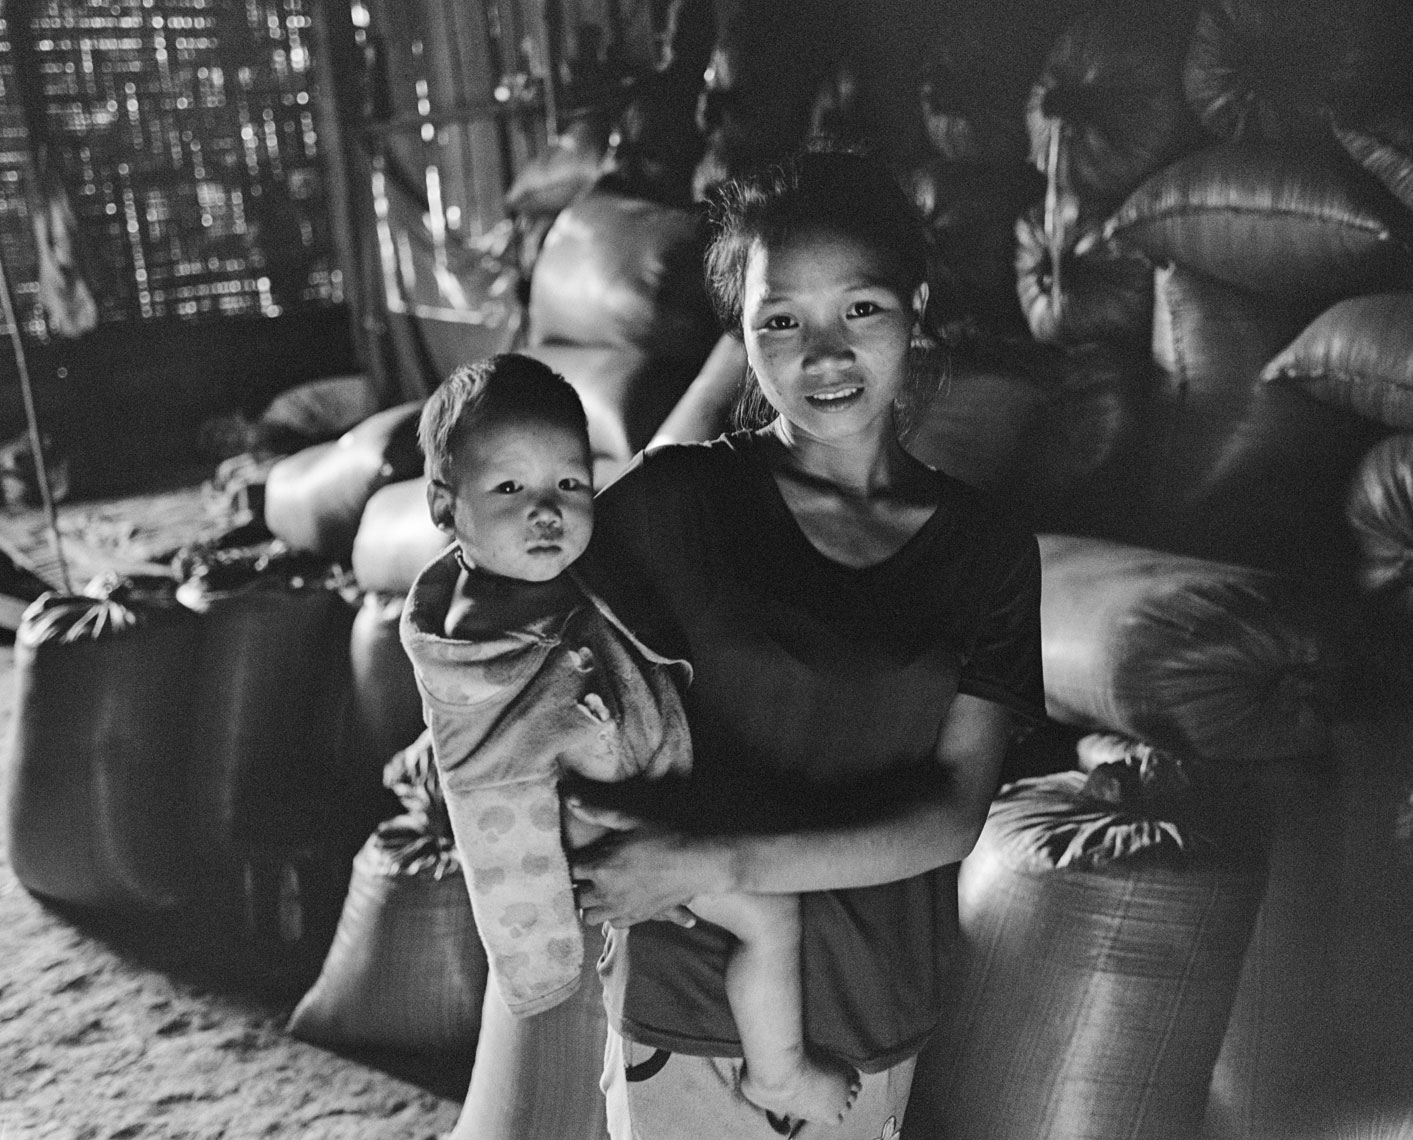 mother-and-baby-luang-namtha-village